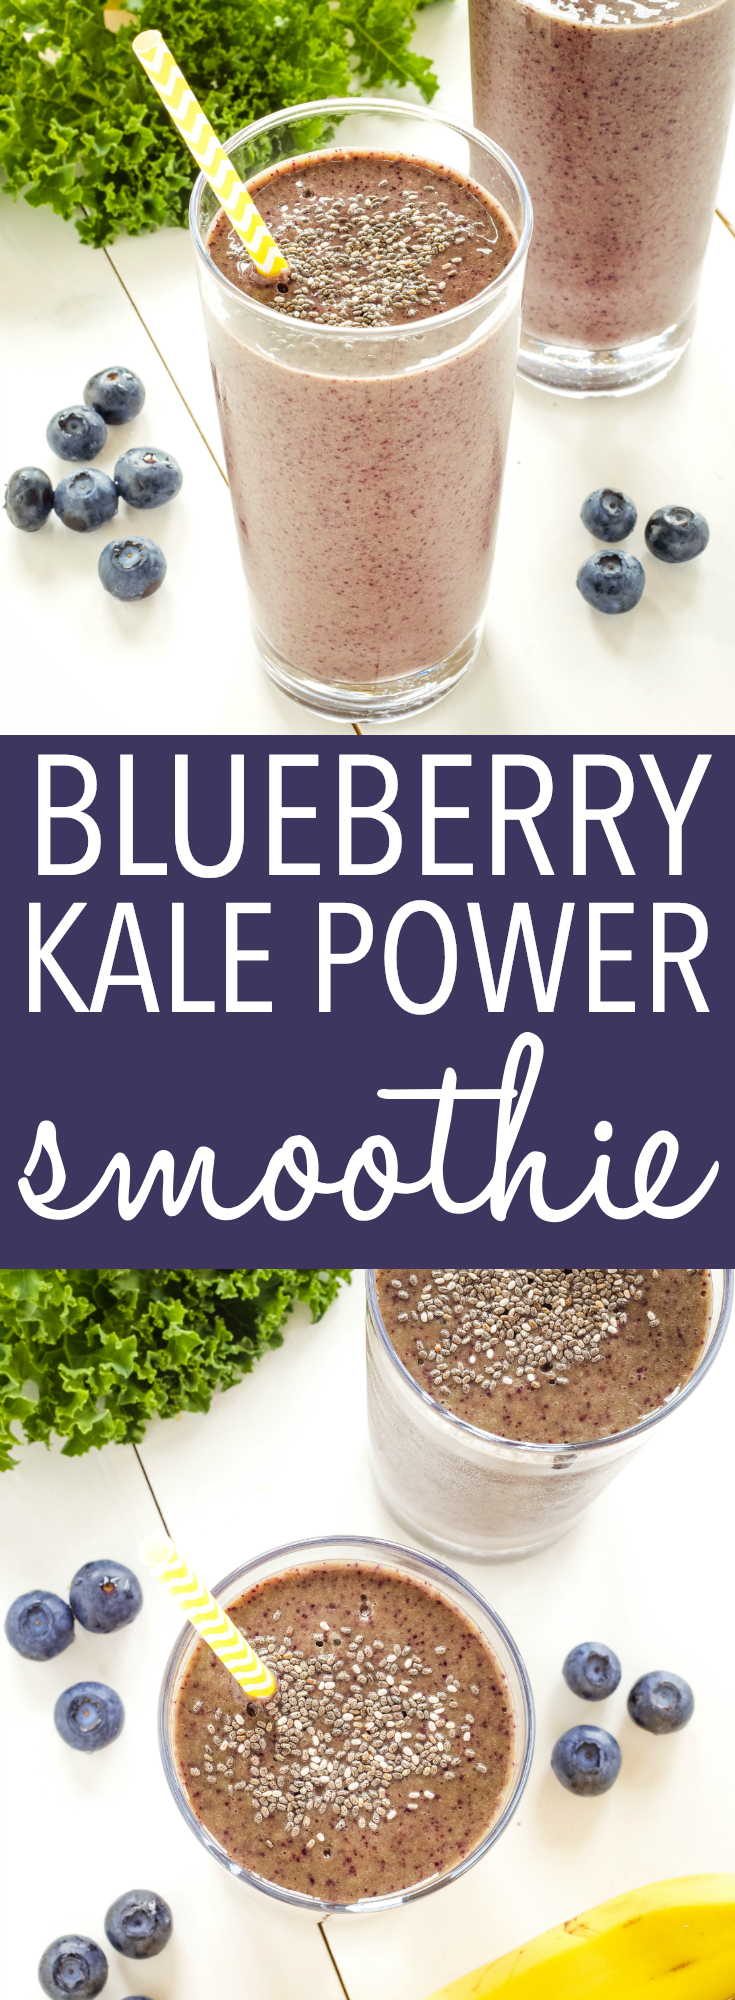 This Blueberry Kale Power Smoothie is the perfect healthy breakfast or snack that's packed with nutrition! Make it dairy-free and vegan! Recipe from thebusybaker.ca! #smoothie #healthy #newyearnewyou #kale #blueberry #chiaseeds #vegan #dairyfree #easyrecipe #diet via @busybakerblog